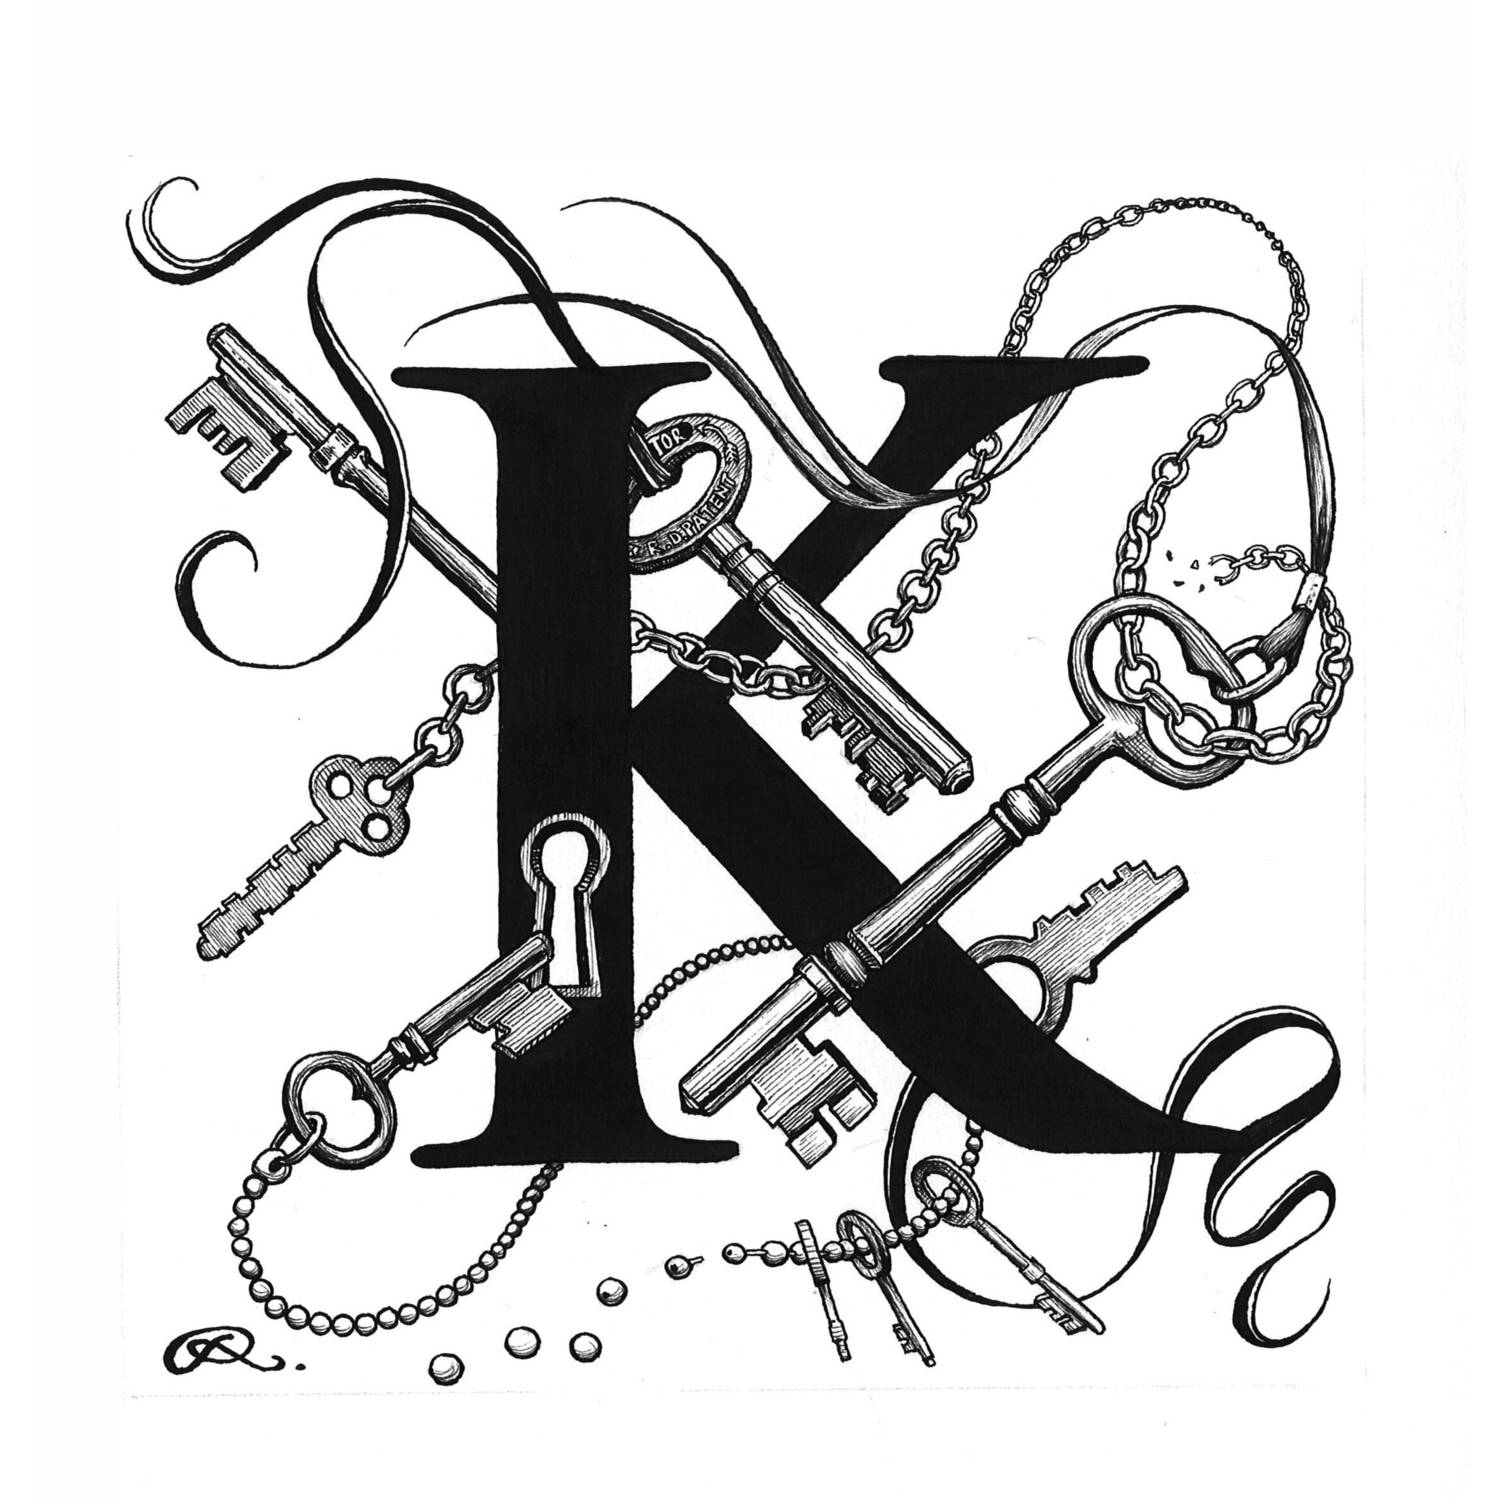 K - Keyhole Chaos Intricate Ink Print-0